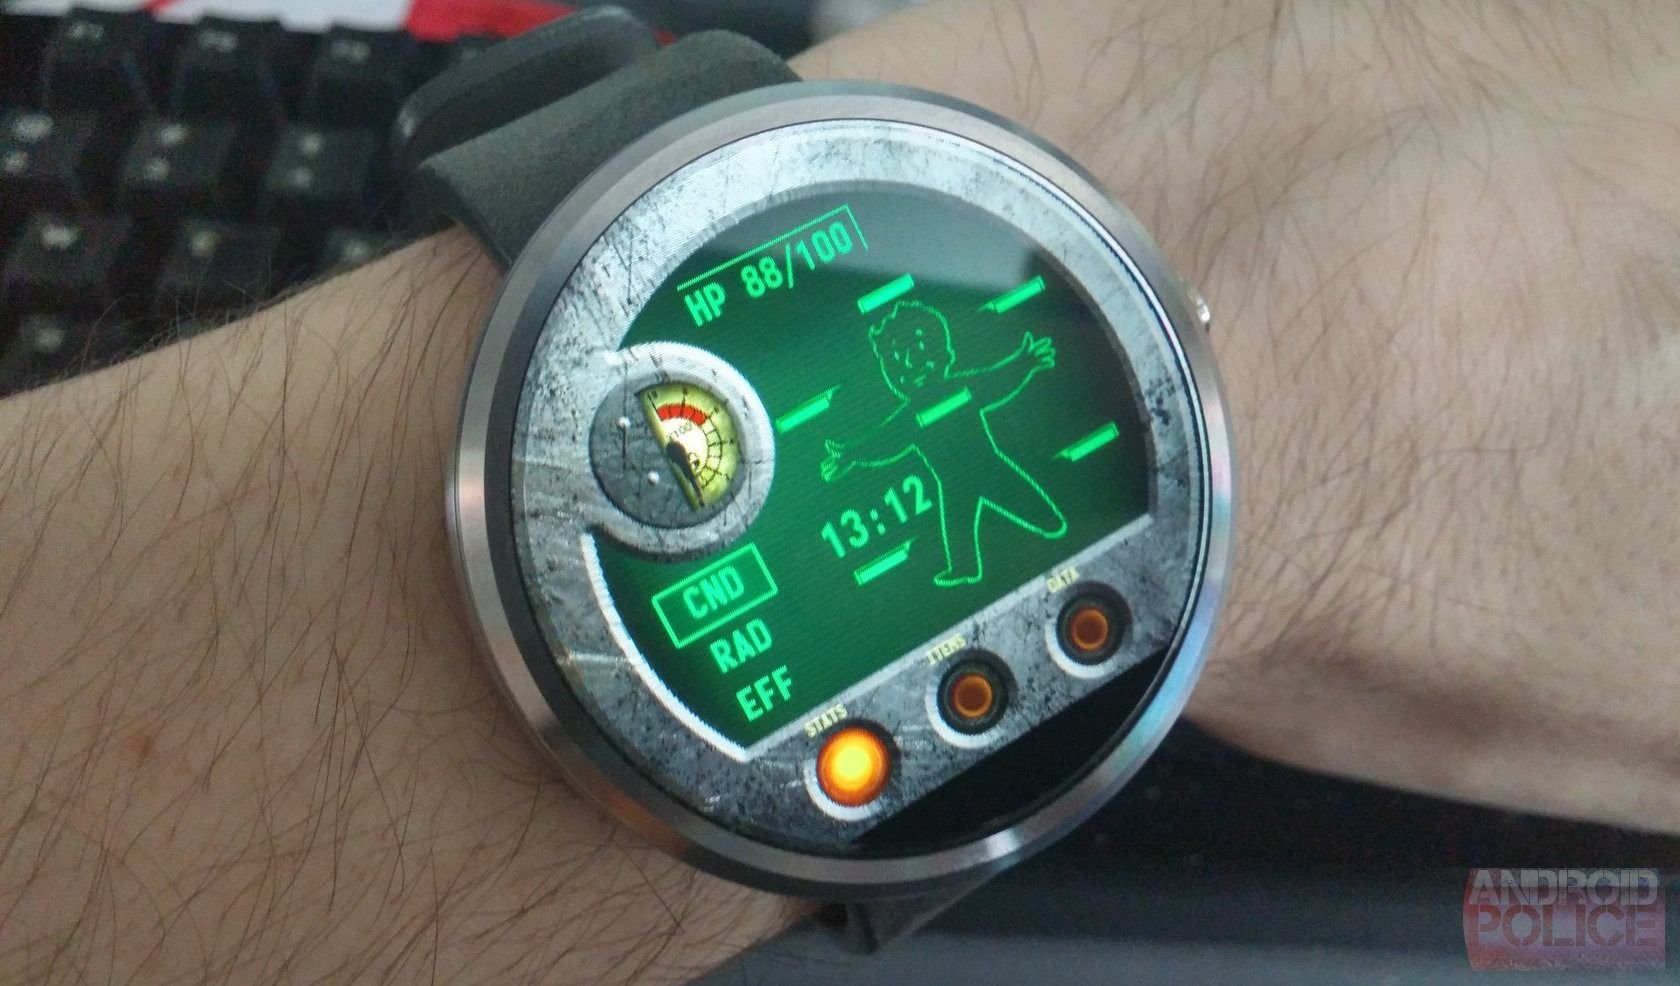 Facer android wear - Wm_2014 09 19 13 12 58